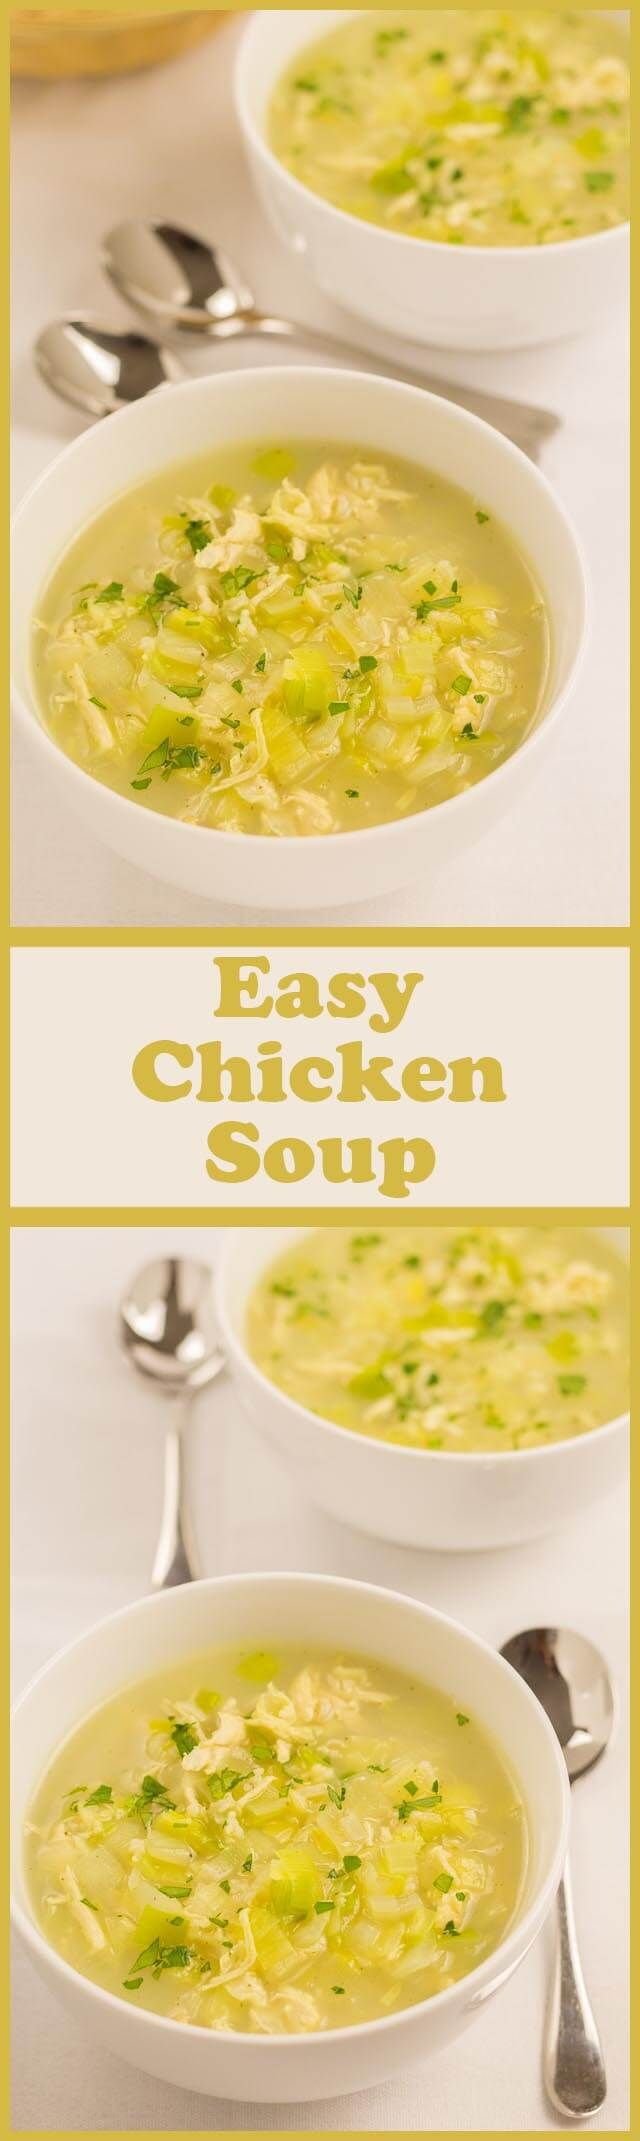 This easy chicken soup recipe is a great quick healthy meal to put together if you don't have the luxury of left over chicken lying about. It's made from just one chicken breast, leek, onion, rice and stock. It's as simple as that. It tastes absolutely de (chicken ideas quick)